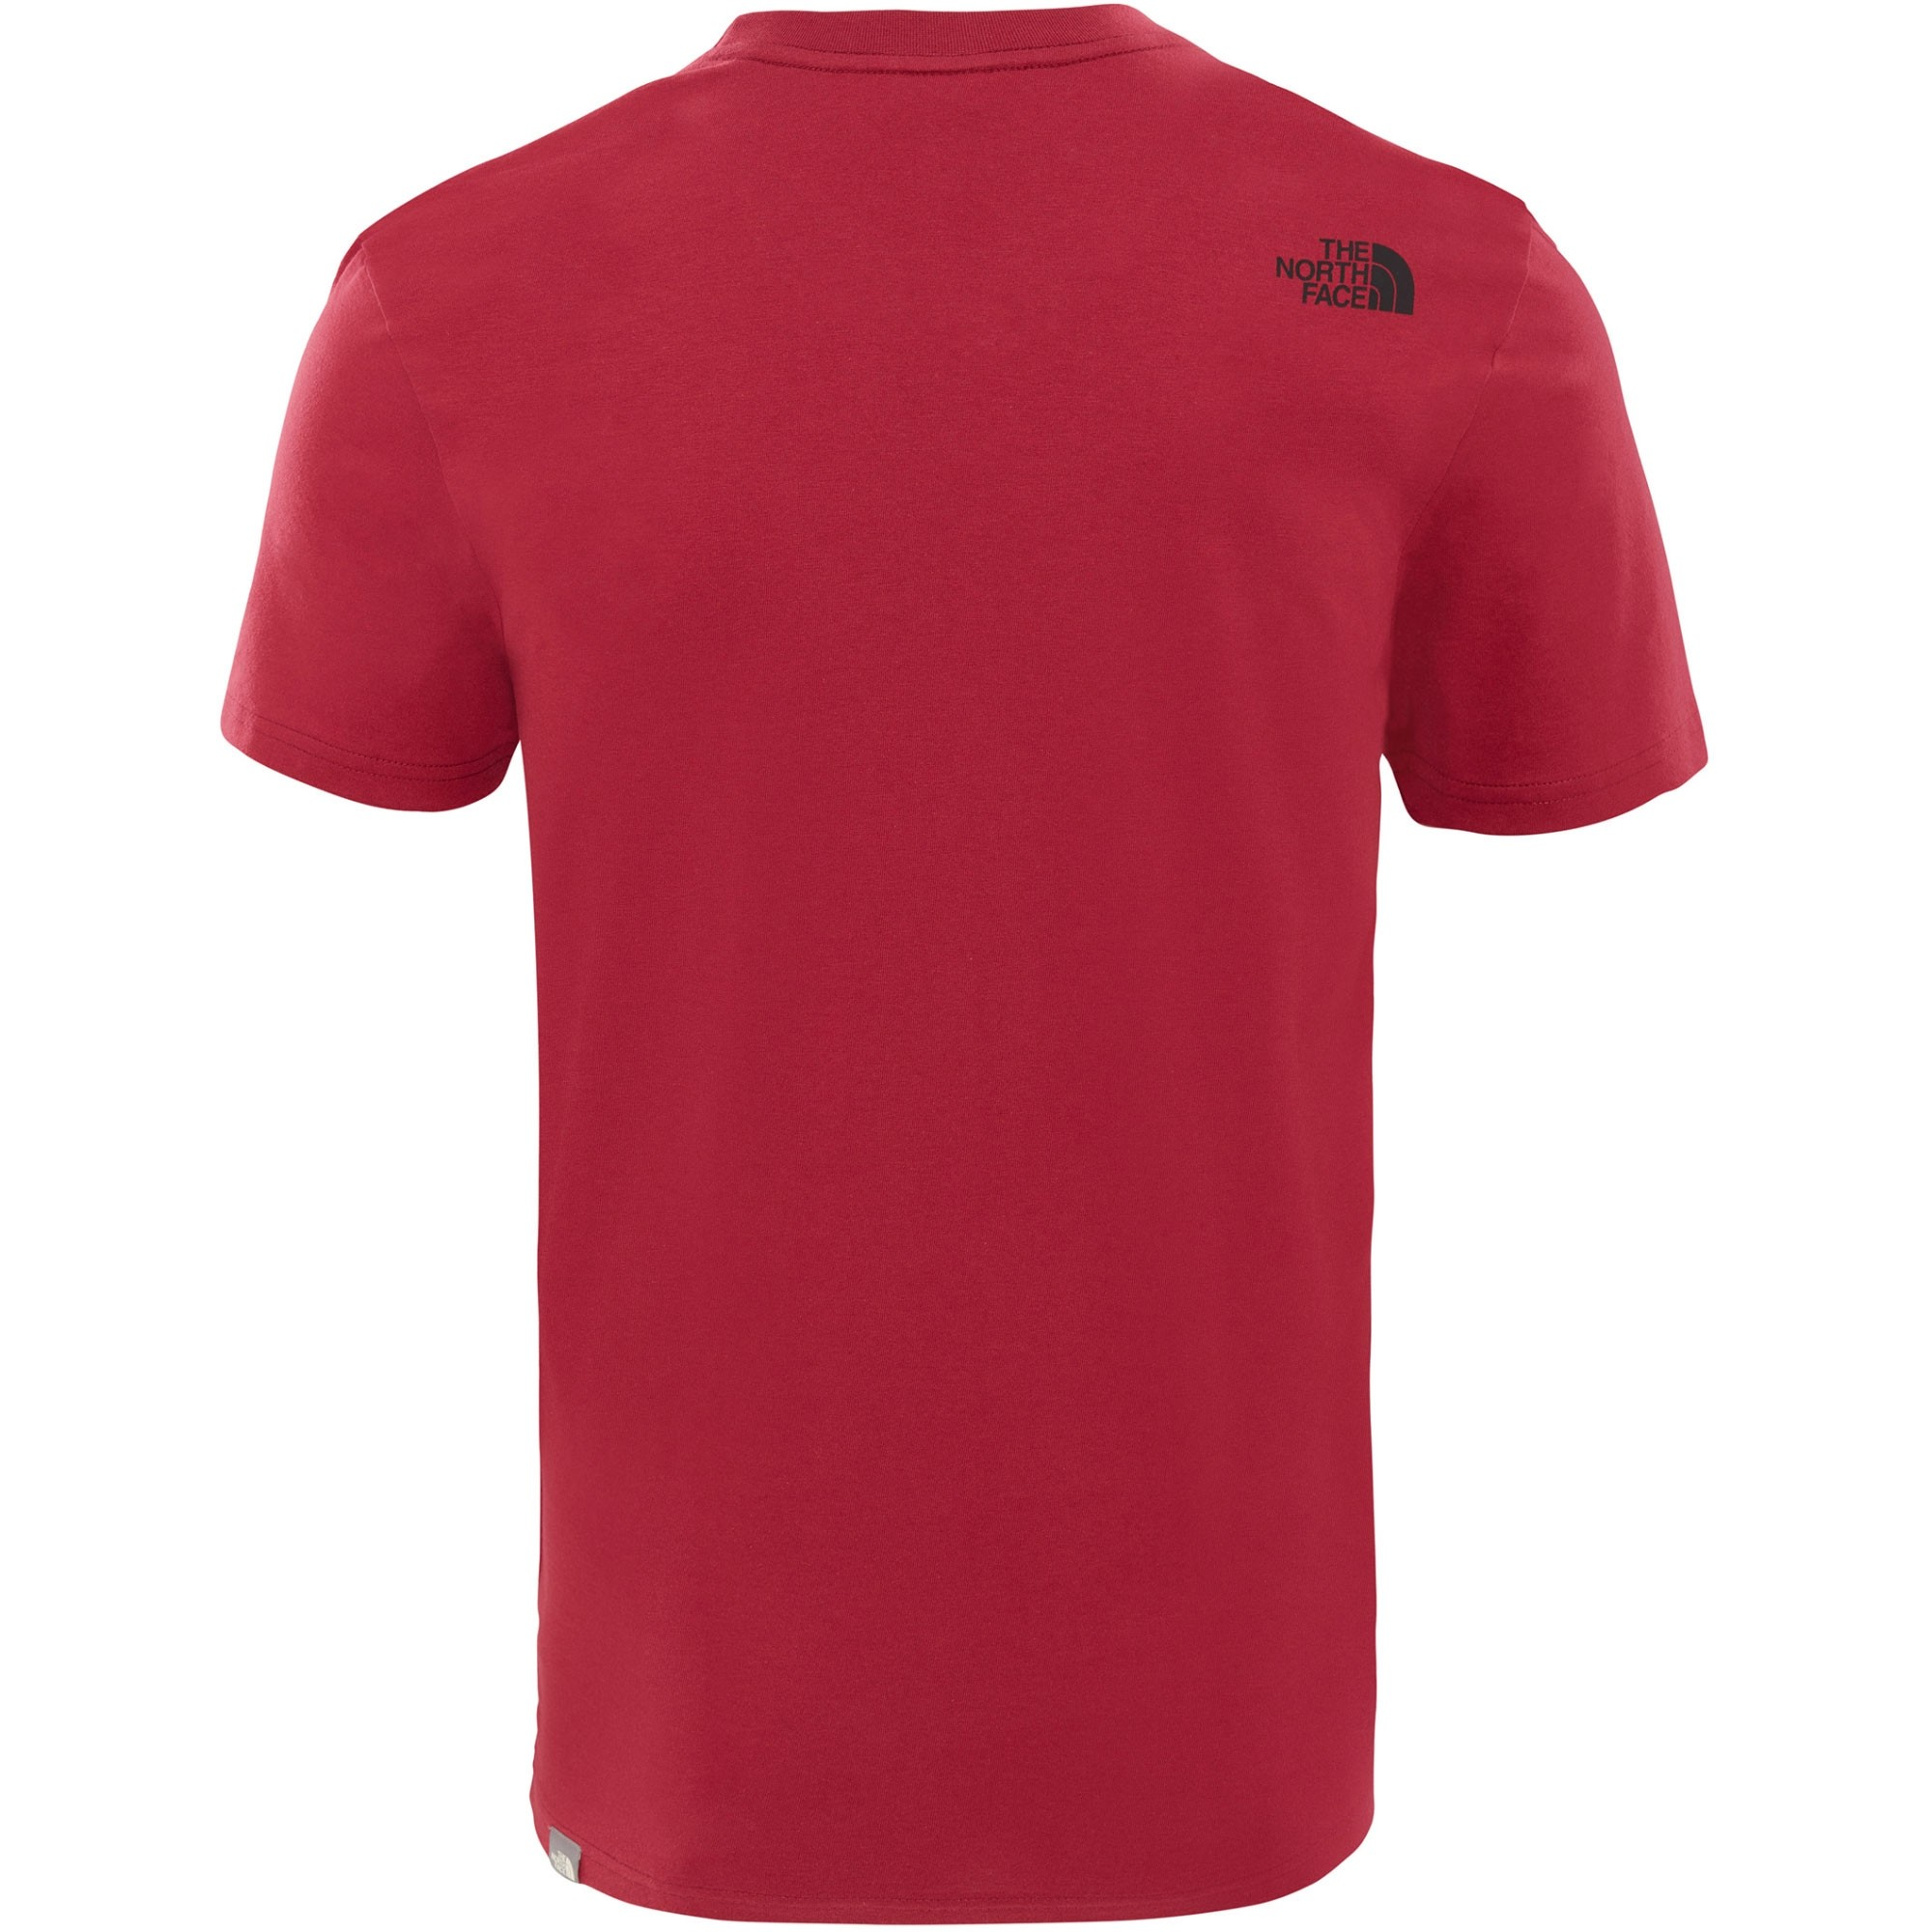 The North Face Short Sleeved Easy Tee - Rumba Red - back